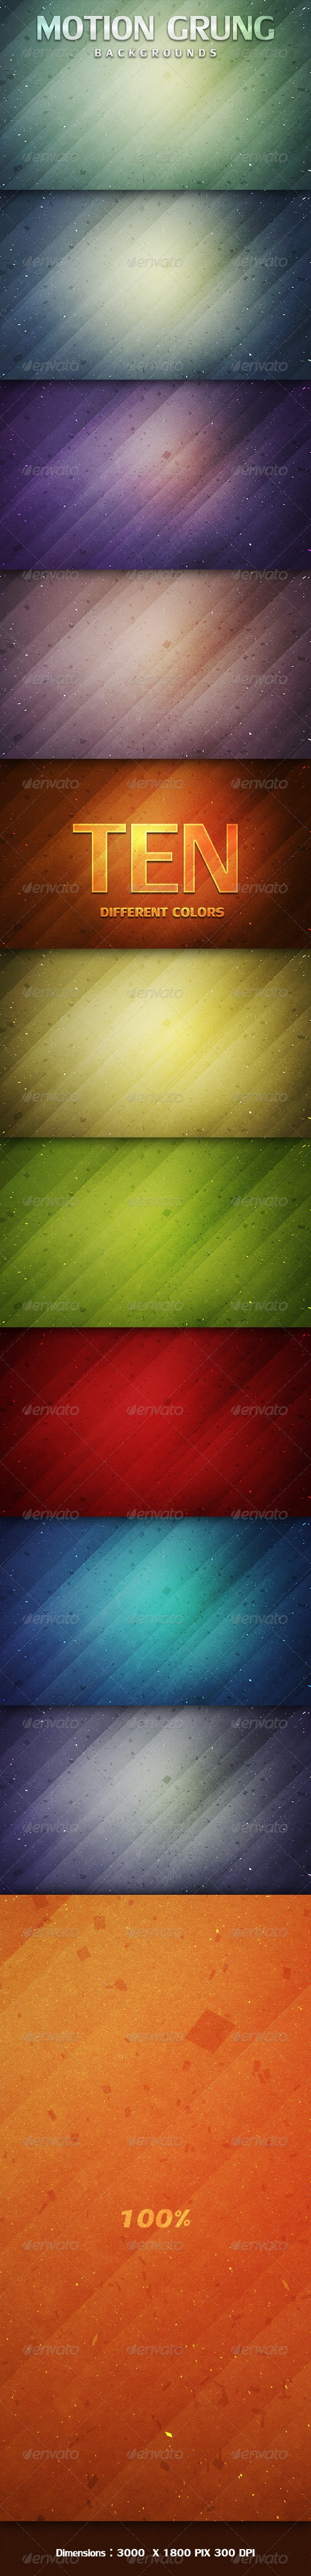 Motion Grunge Backgrounds - Abstract Backgrounds